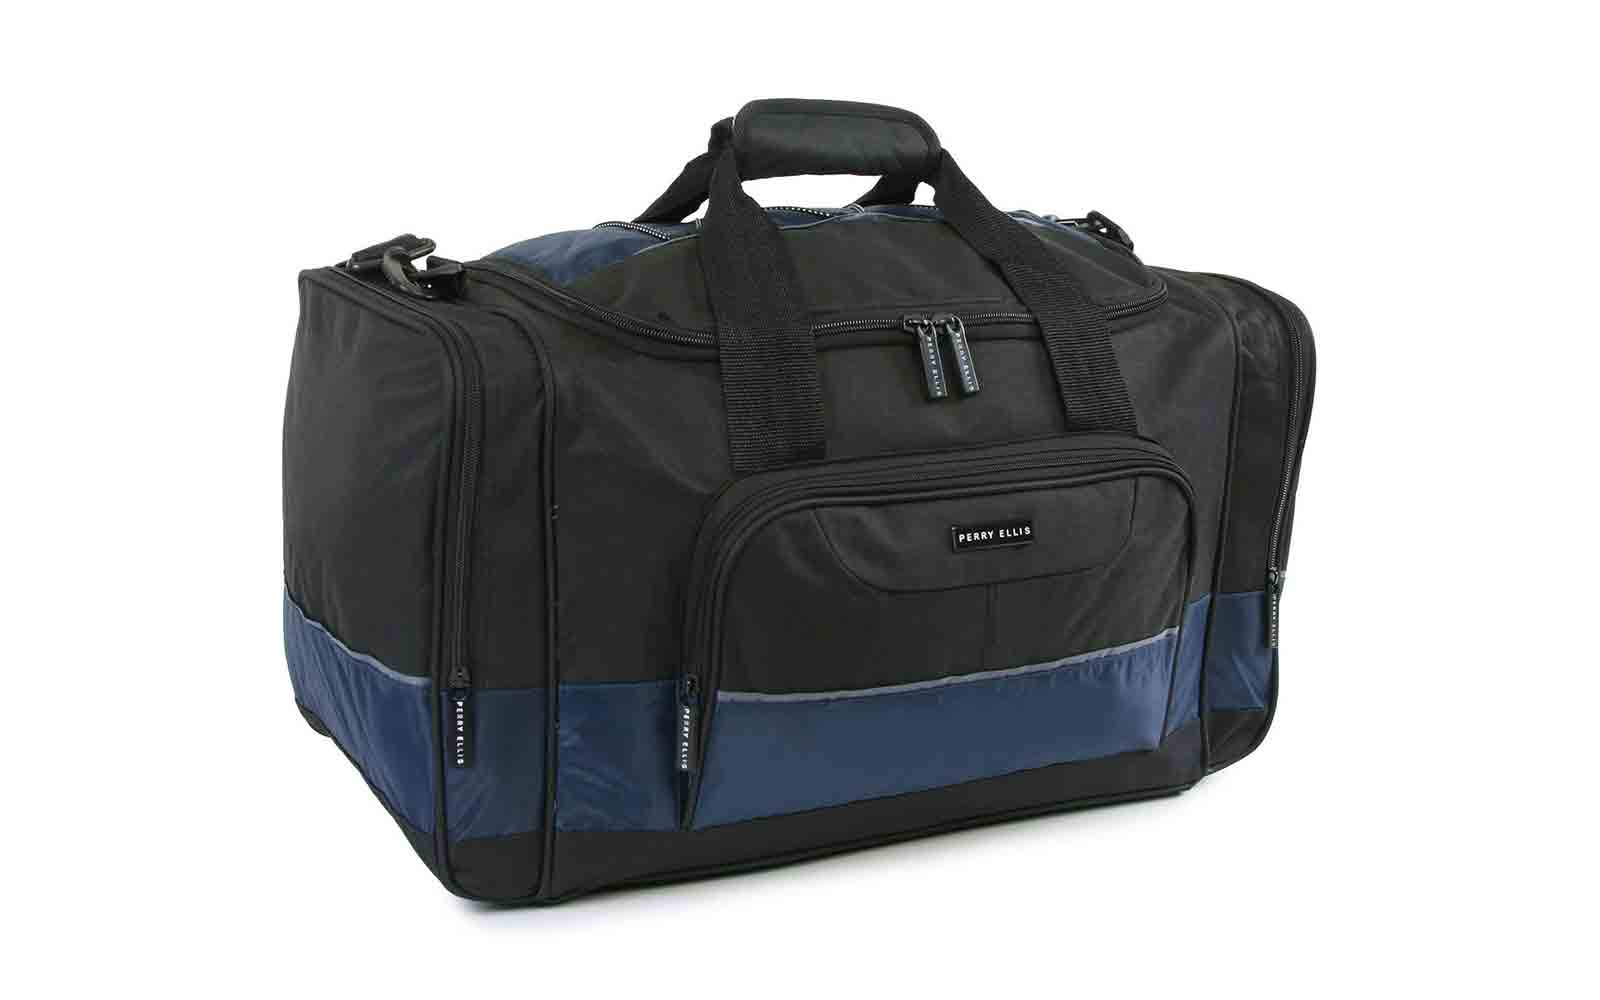 Perry Ellis 22  Business Duffel Bag